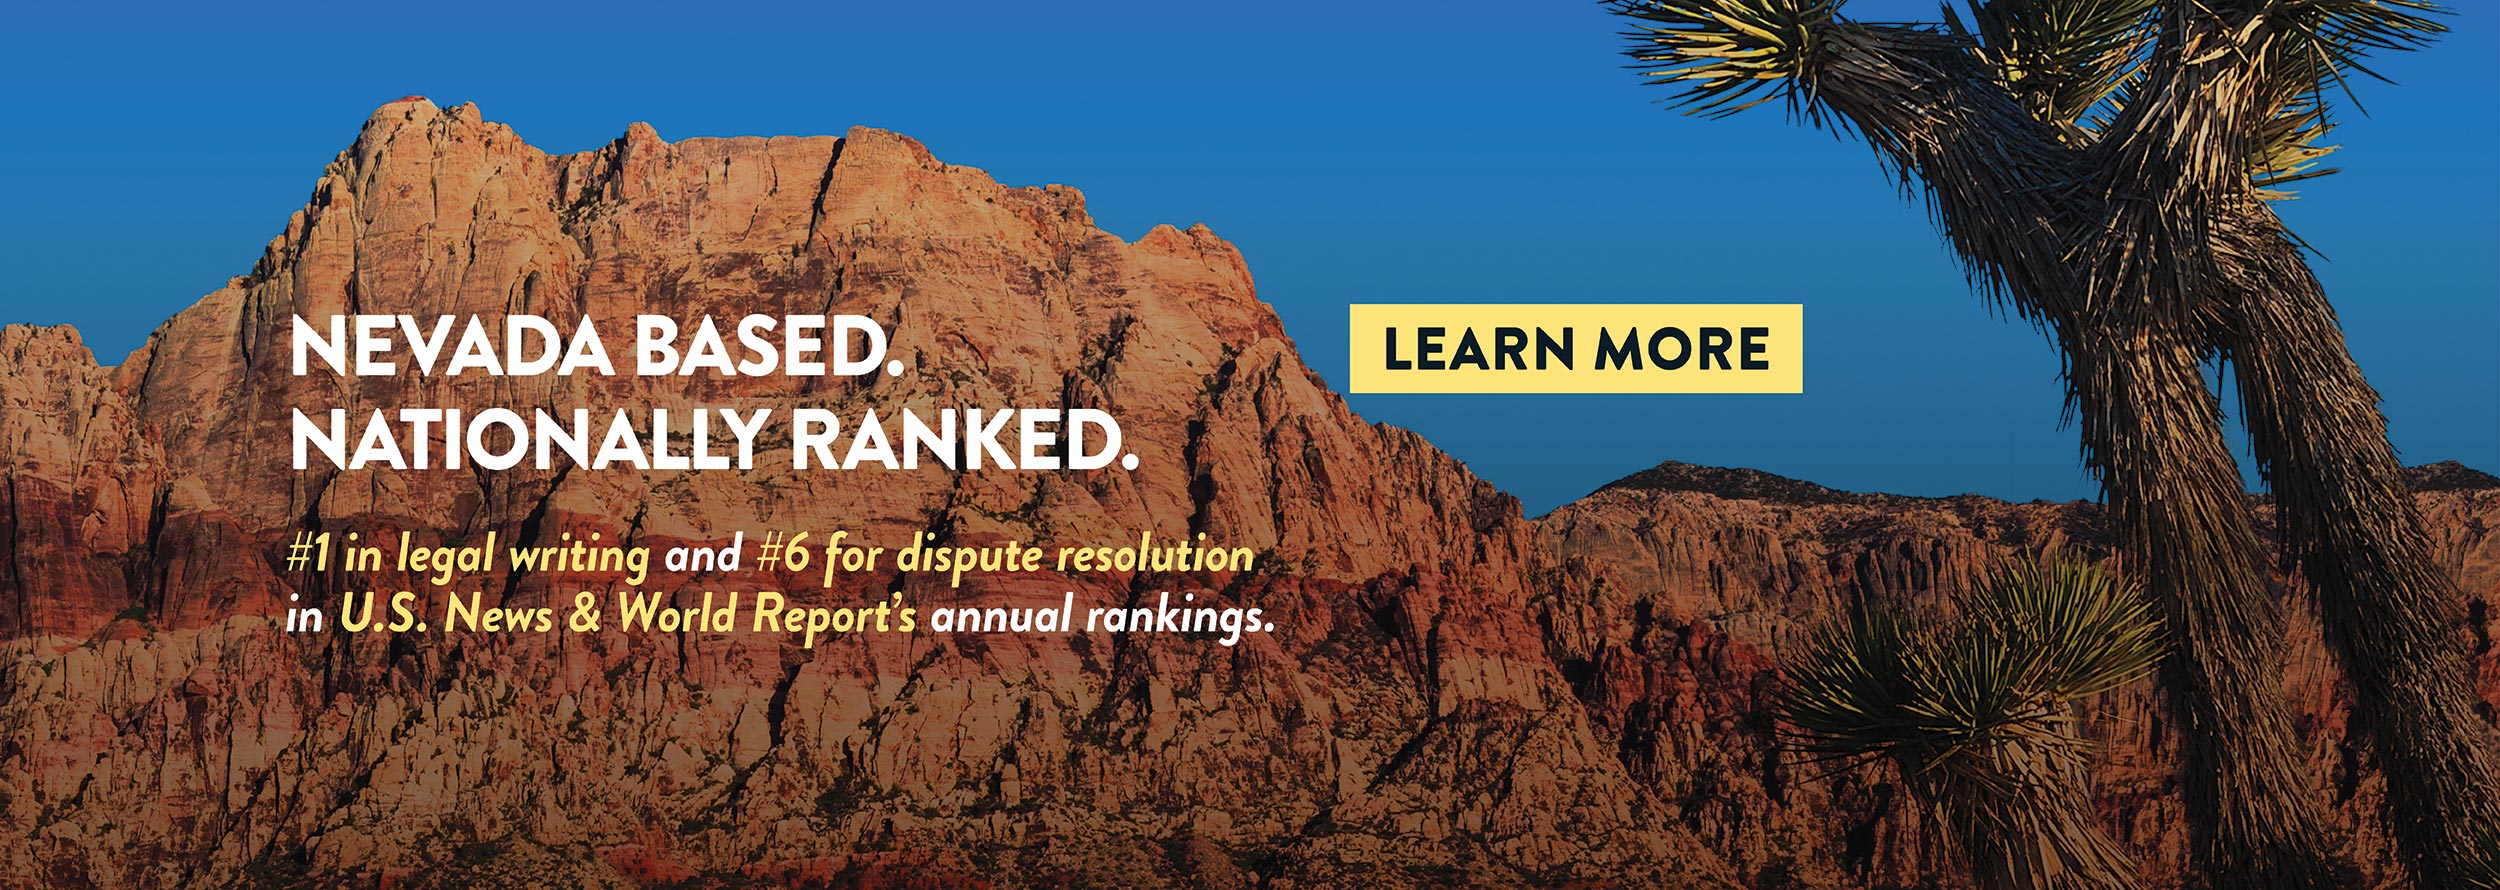 Nevada Based. Nationally Ranked. #1 in legal writing and #6 for dispute resolution in U.S. News & World Report's annual rankings.